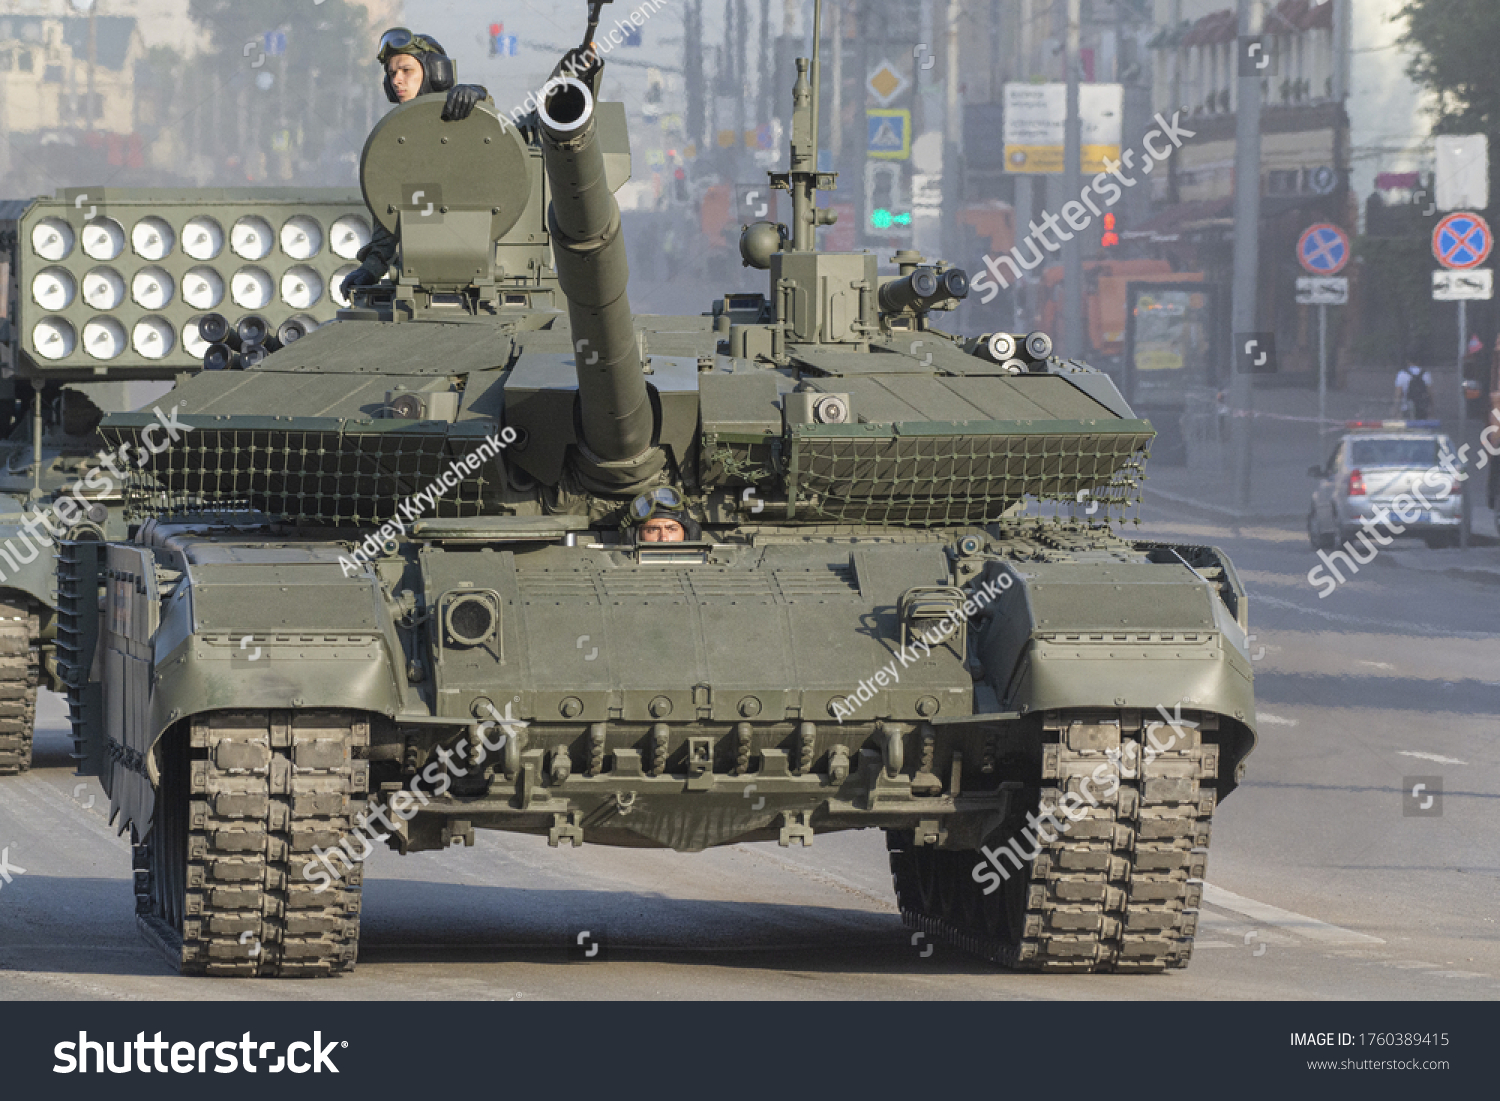 https://image.shutterstock.com/z/stock-photo-june-moscow-russia-the-t-m-tank-goes-to-red-square-to-participate-in-the-rehearsal-of-1760389415.jpg